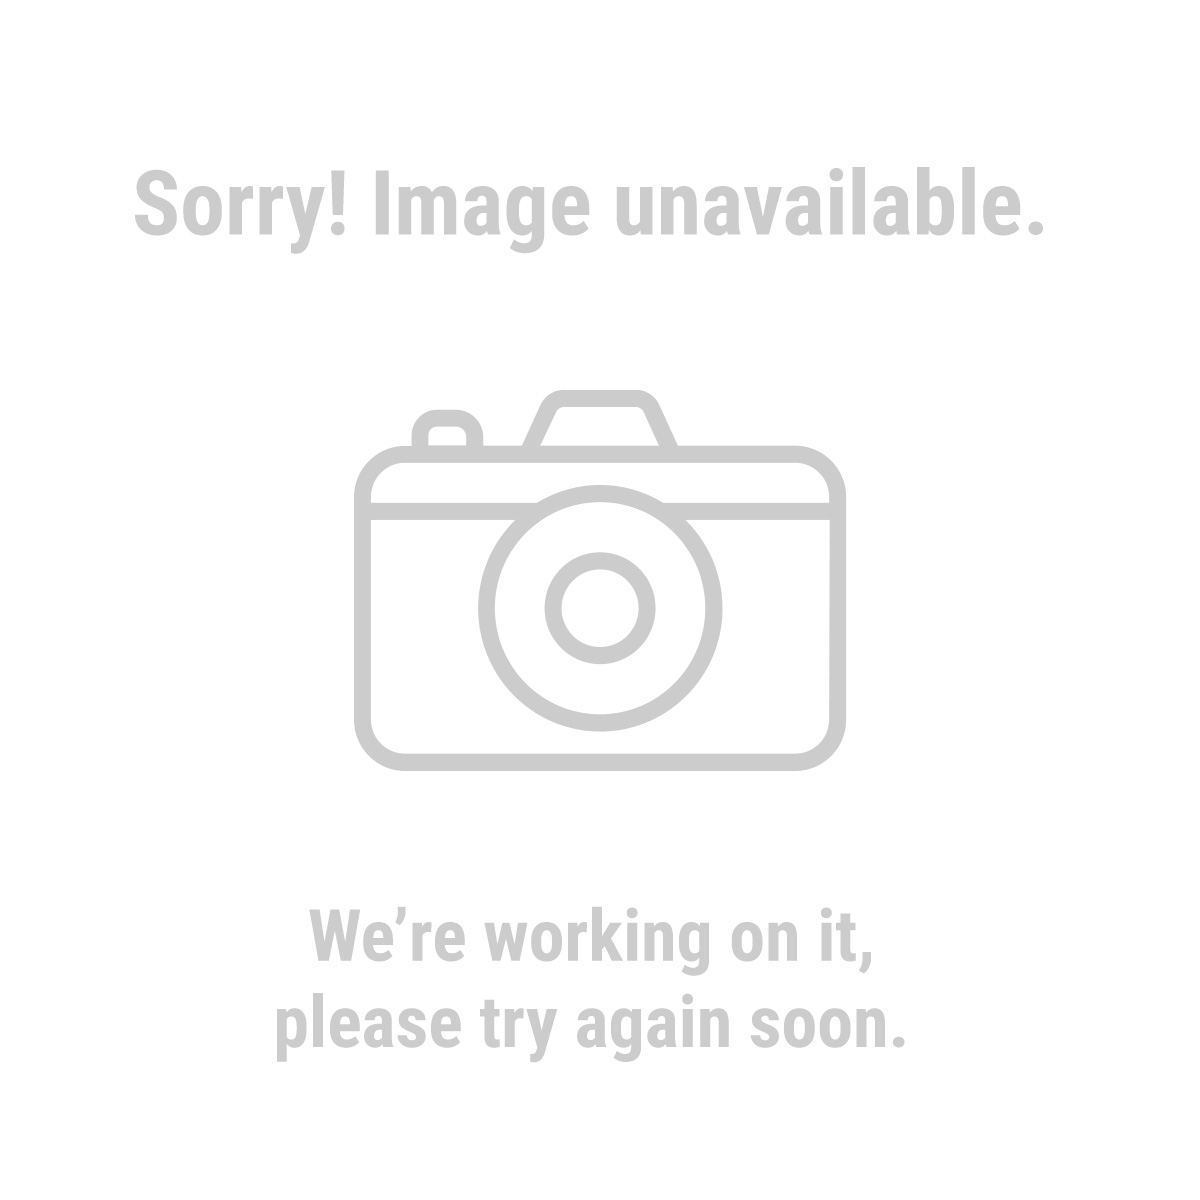 Pittsburgh Professional 67999 High Visibility 3/8 in. Drive Metric Socket Set 20 Pc